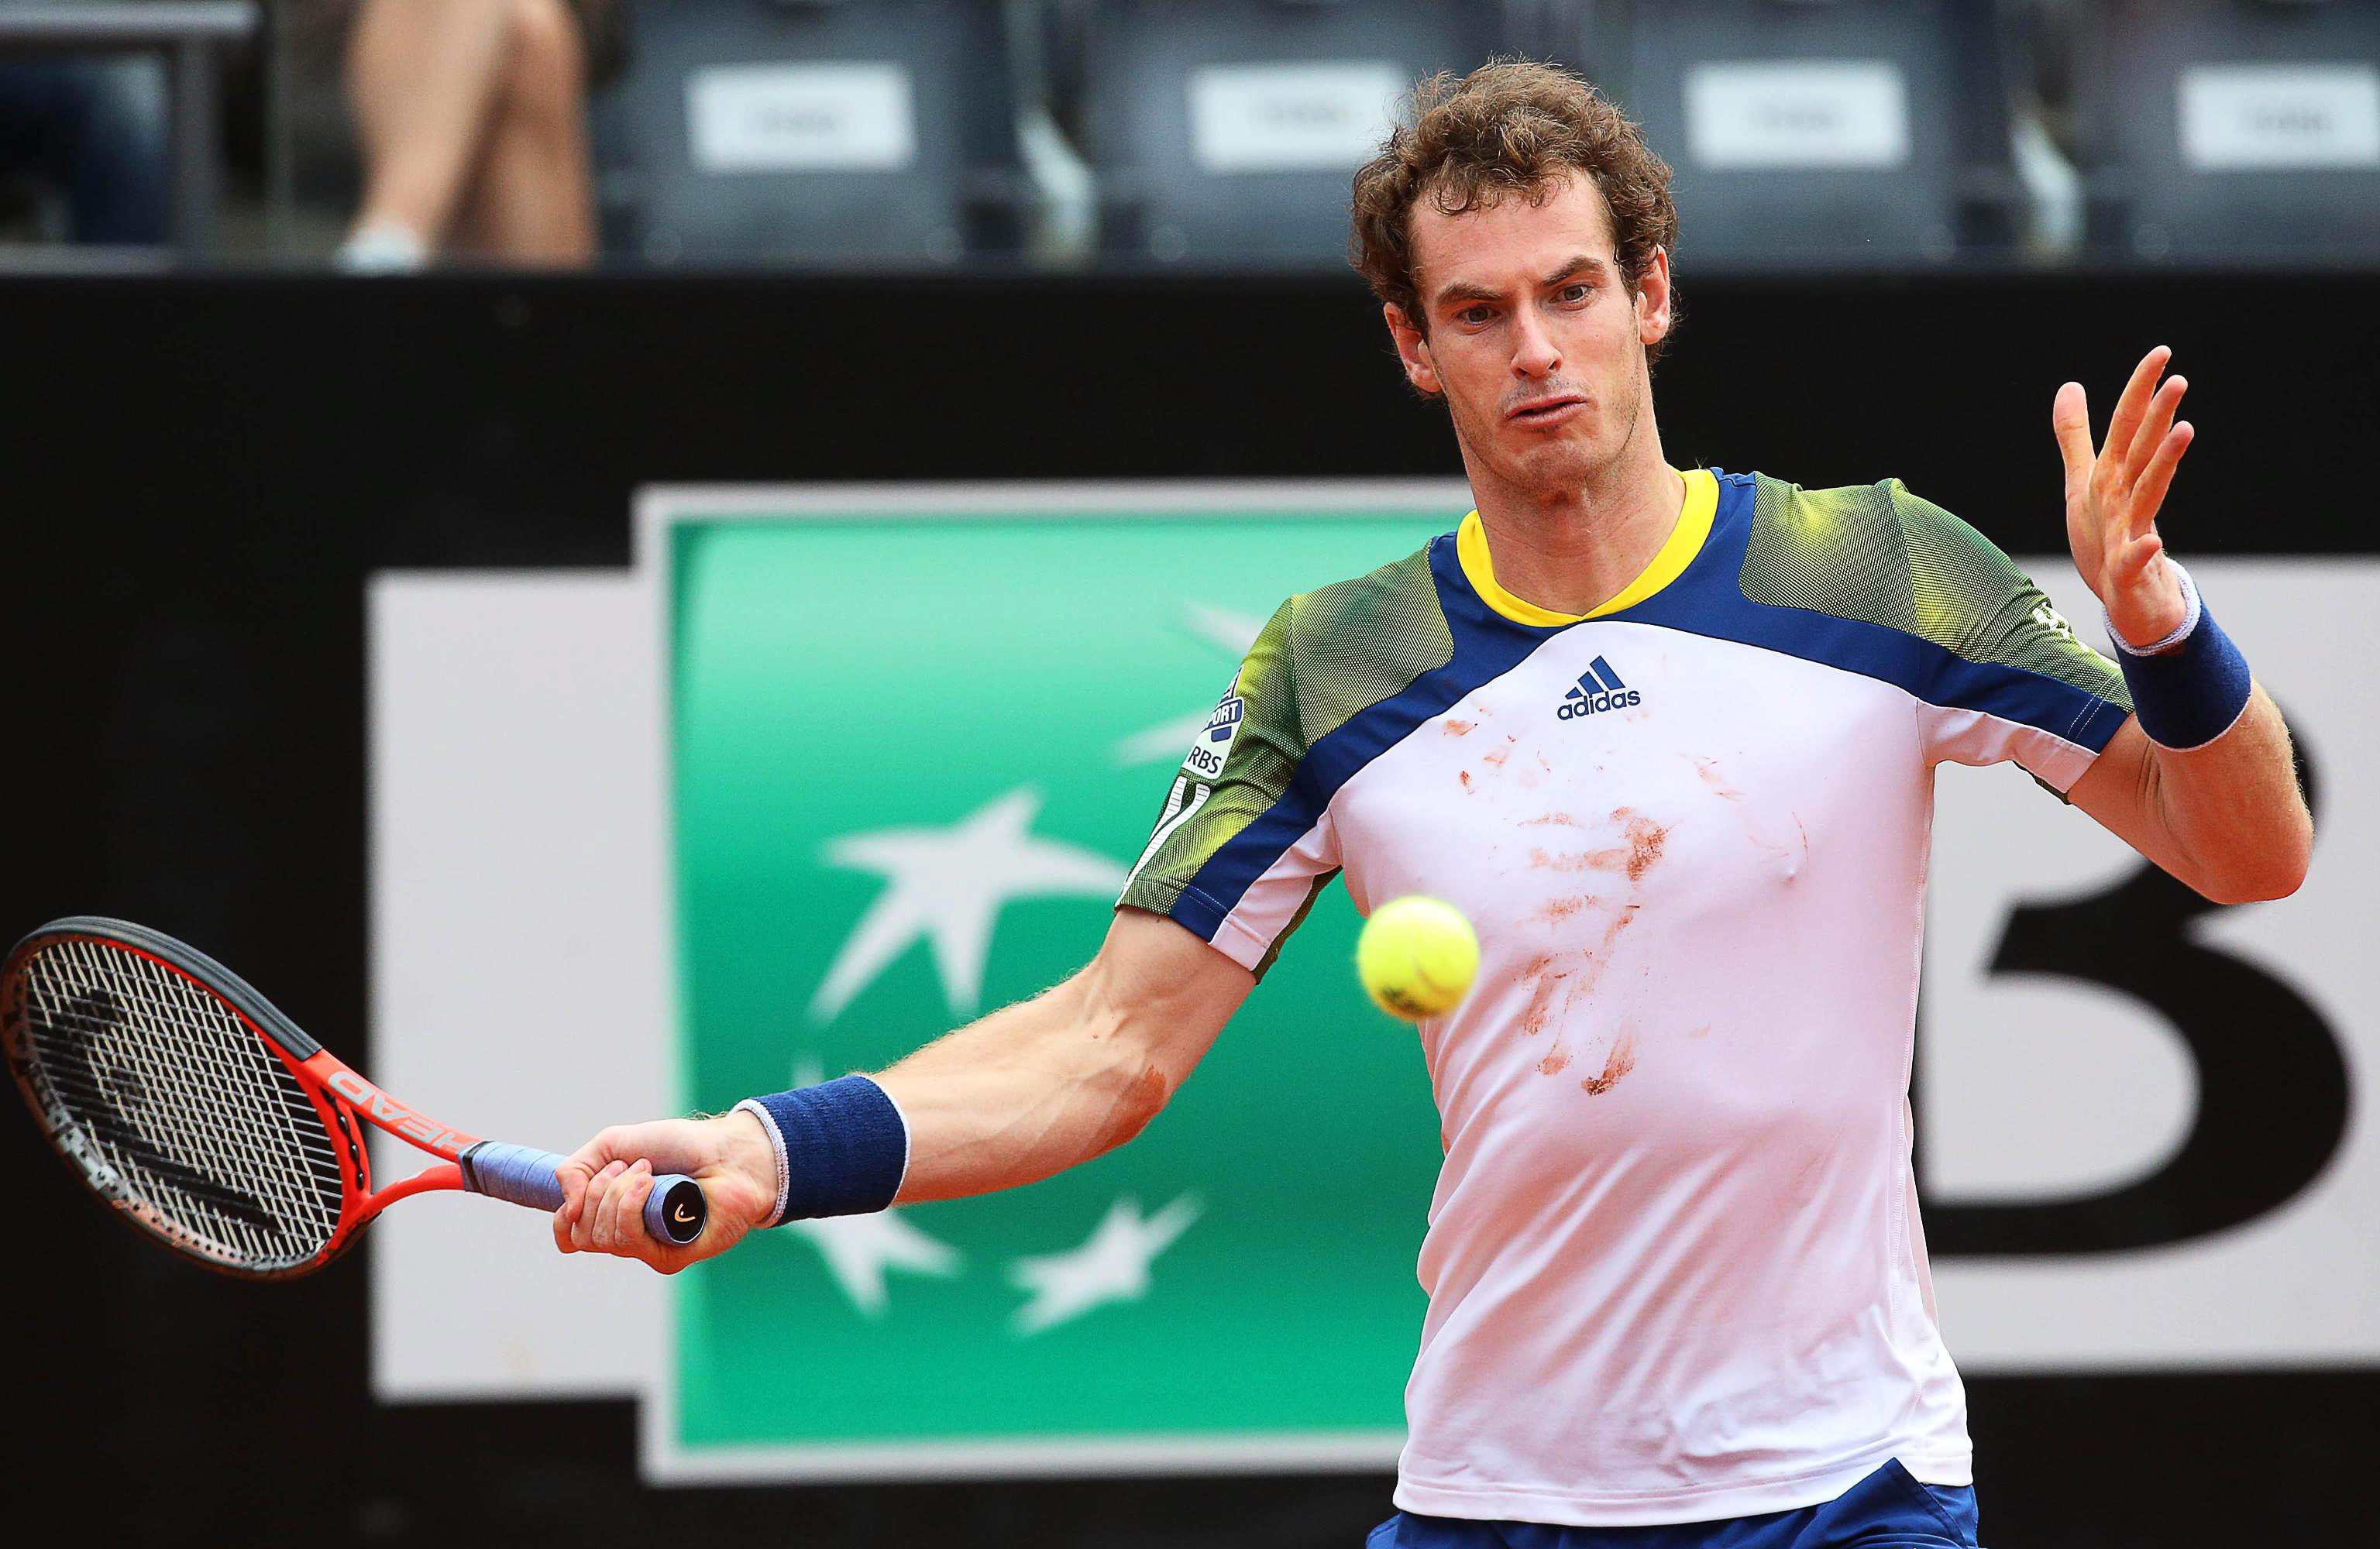 Tim Henman: Andy Murray right to bow out of French Open